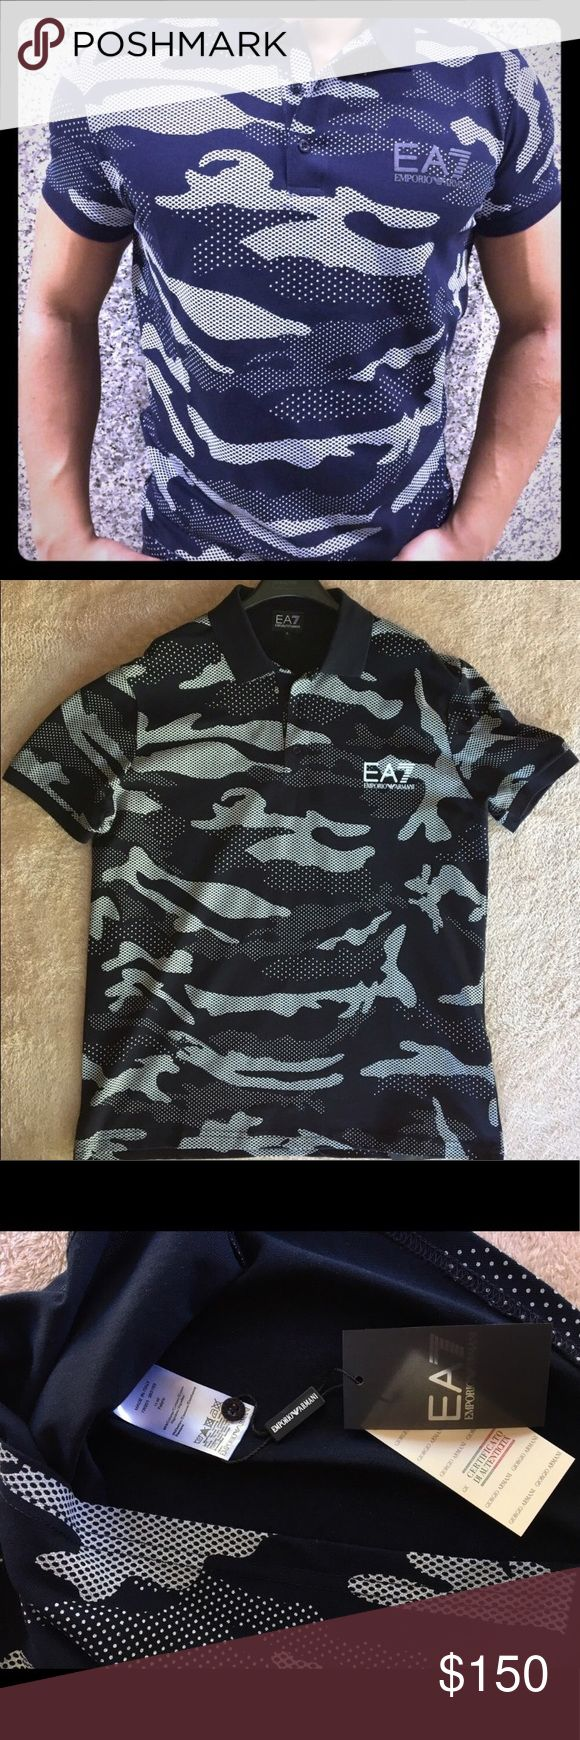 Emporio Armani T- Shirt Description: Black cotton camouflage polo shirt from EA7. It runs one size smaller Emporio Armani Shirts Polos